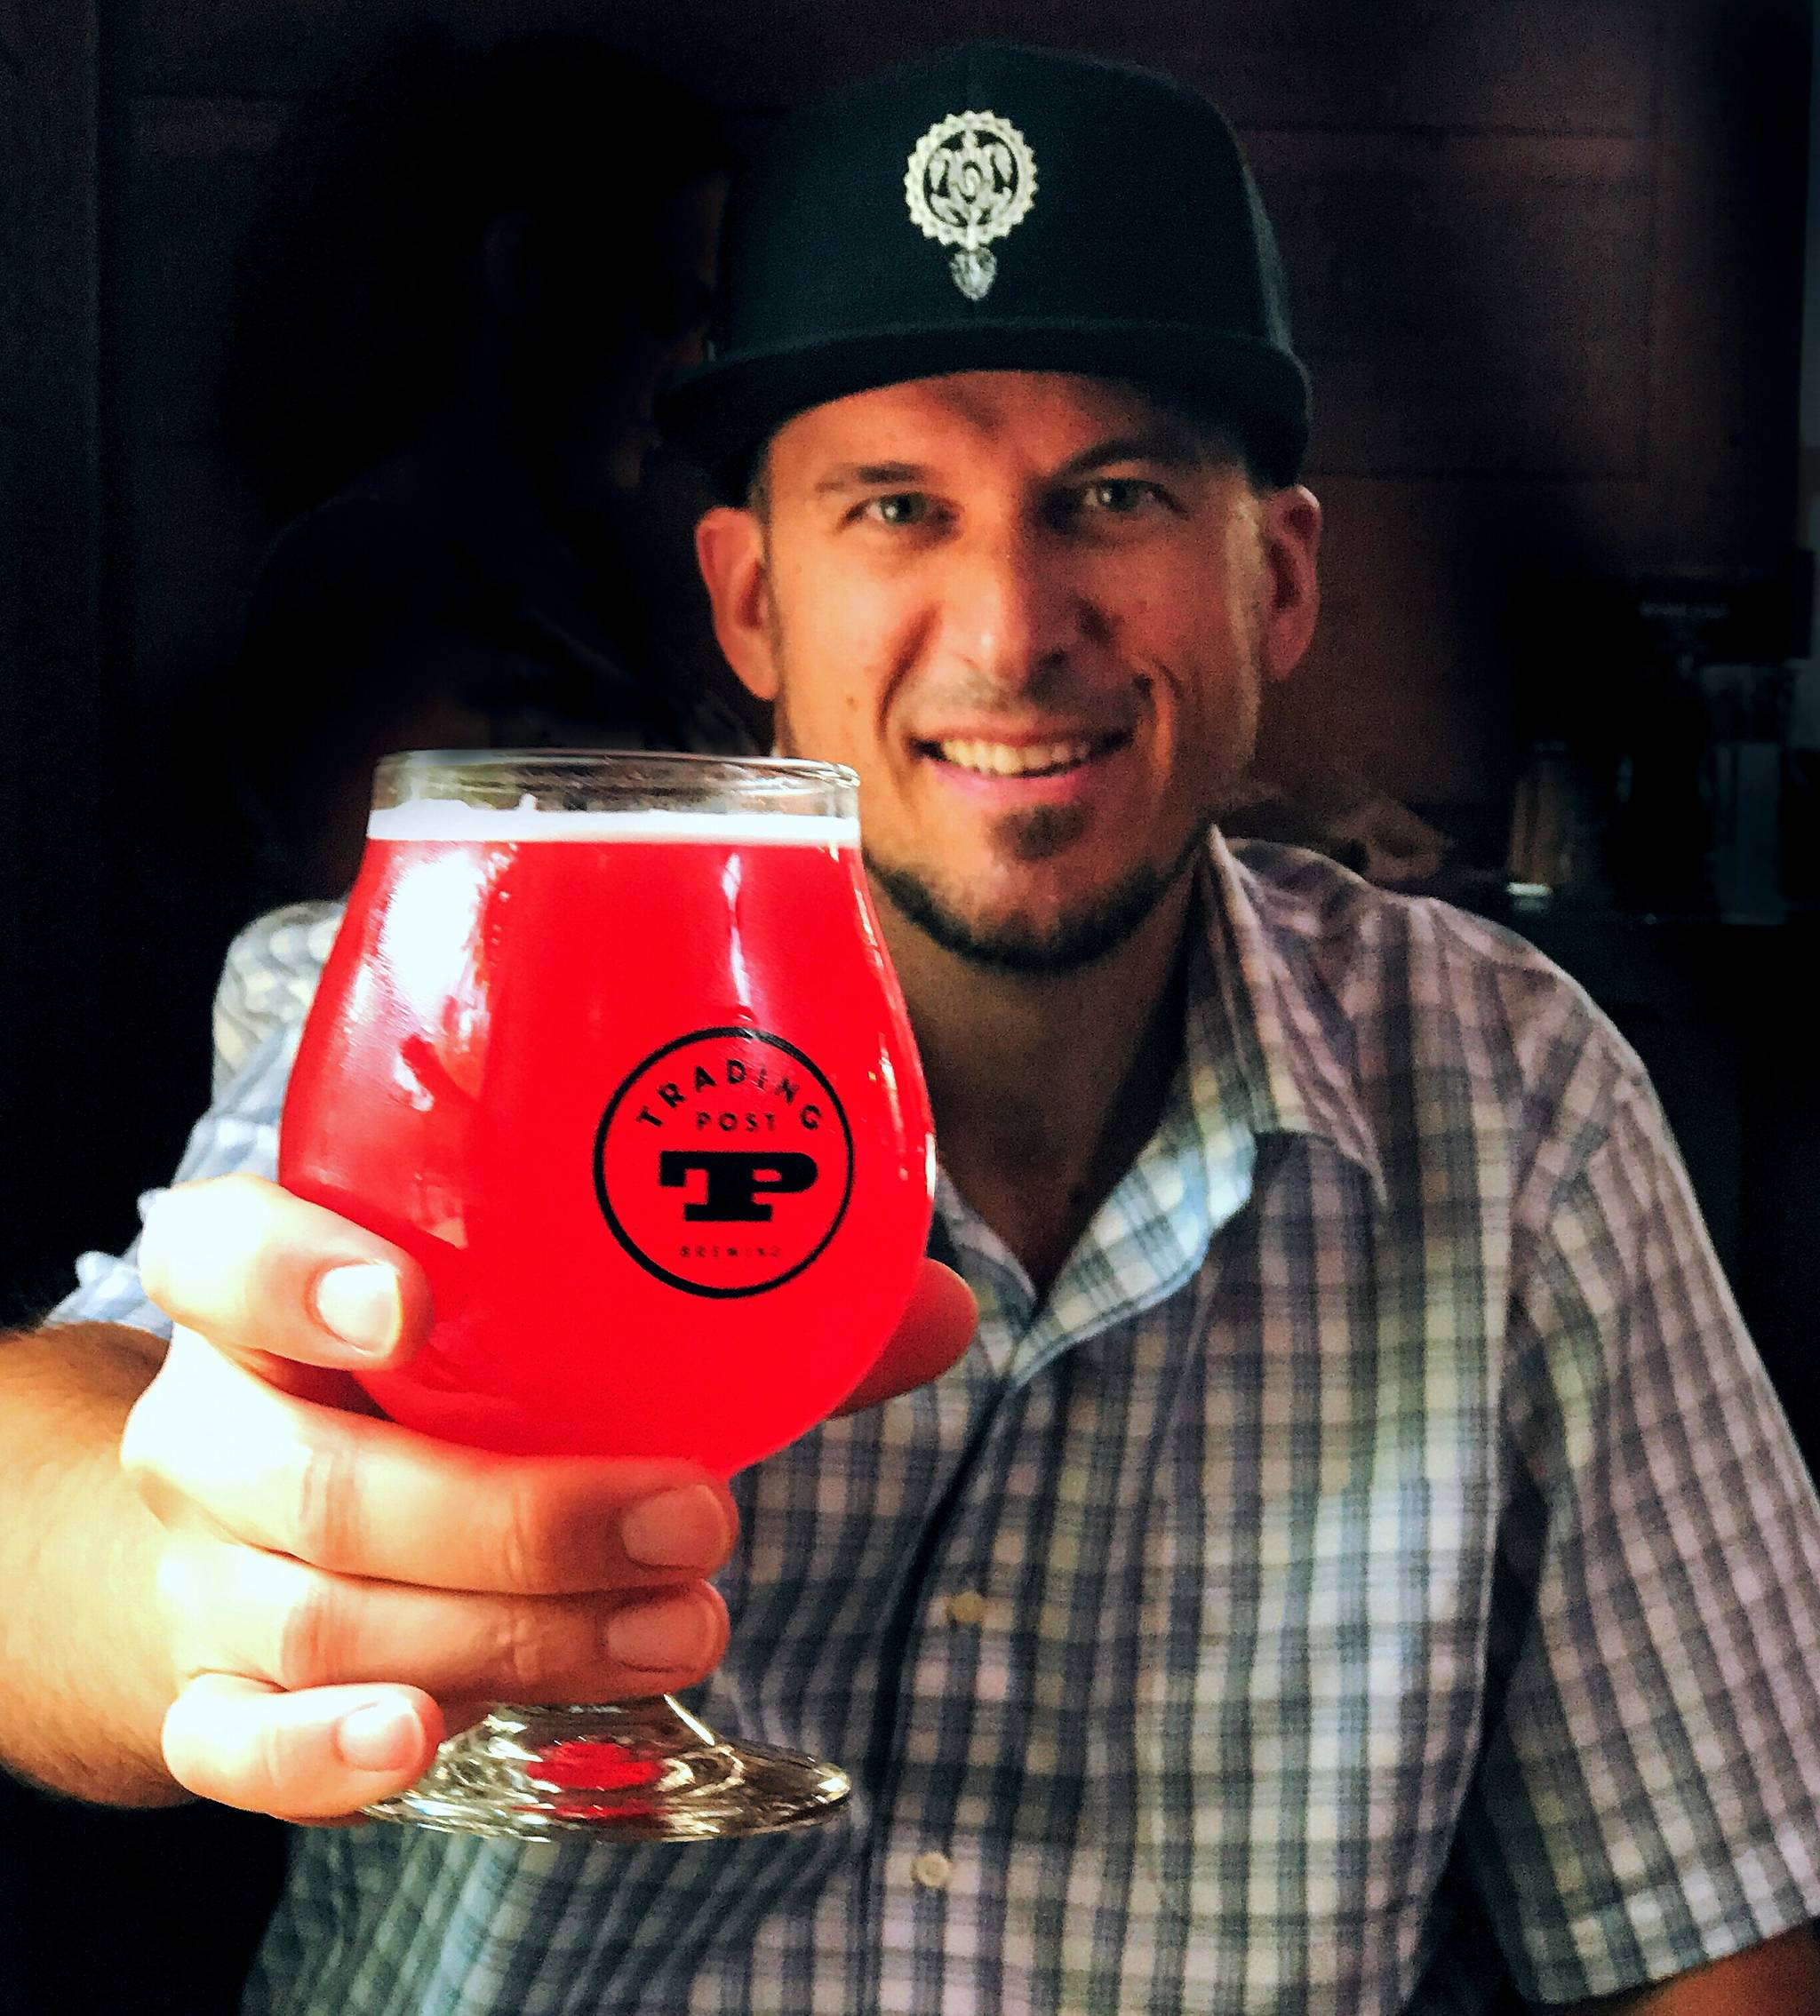 Langley resident and B.C. craft beer enthusiast is hosting a contest that has helped raise more than $7,000 to help fire victims. This picture was taken at the Trading Post Taphouse and Eatery in Fort Langley where he was drinking their newly released Captain Coopers Tart Cranberry Ale. Theresa LaHay photo